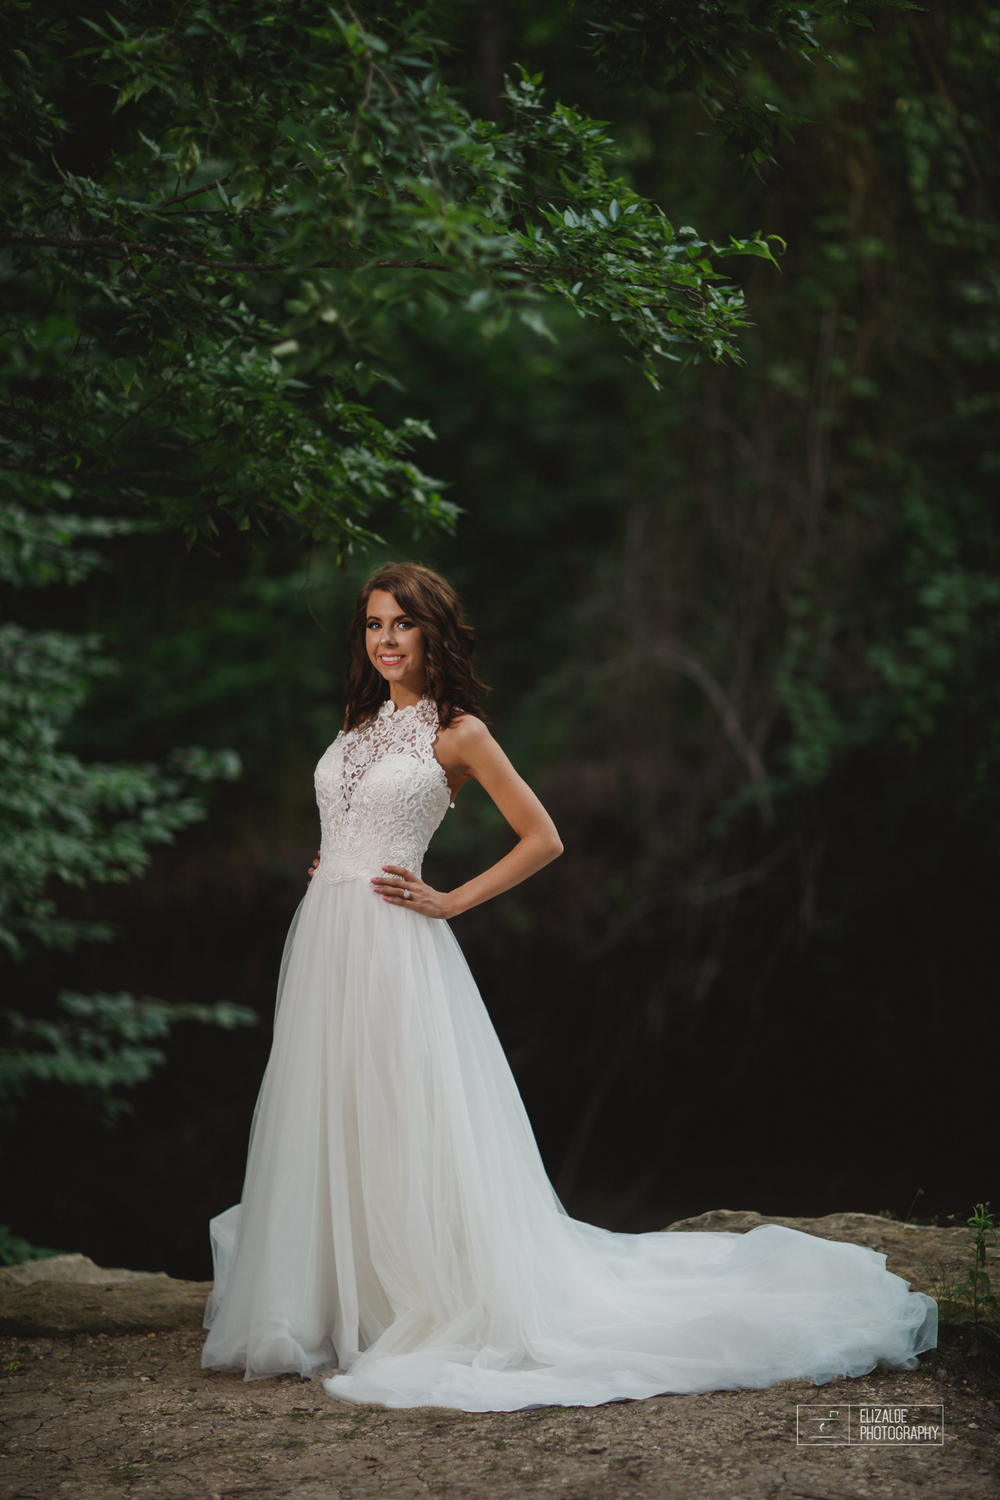 Bridal session_Dallas Photographer_Elizalde Photography_Denton photographer_ DFW Photographer_ Wedding Photographer_Baleigh14.jpg